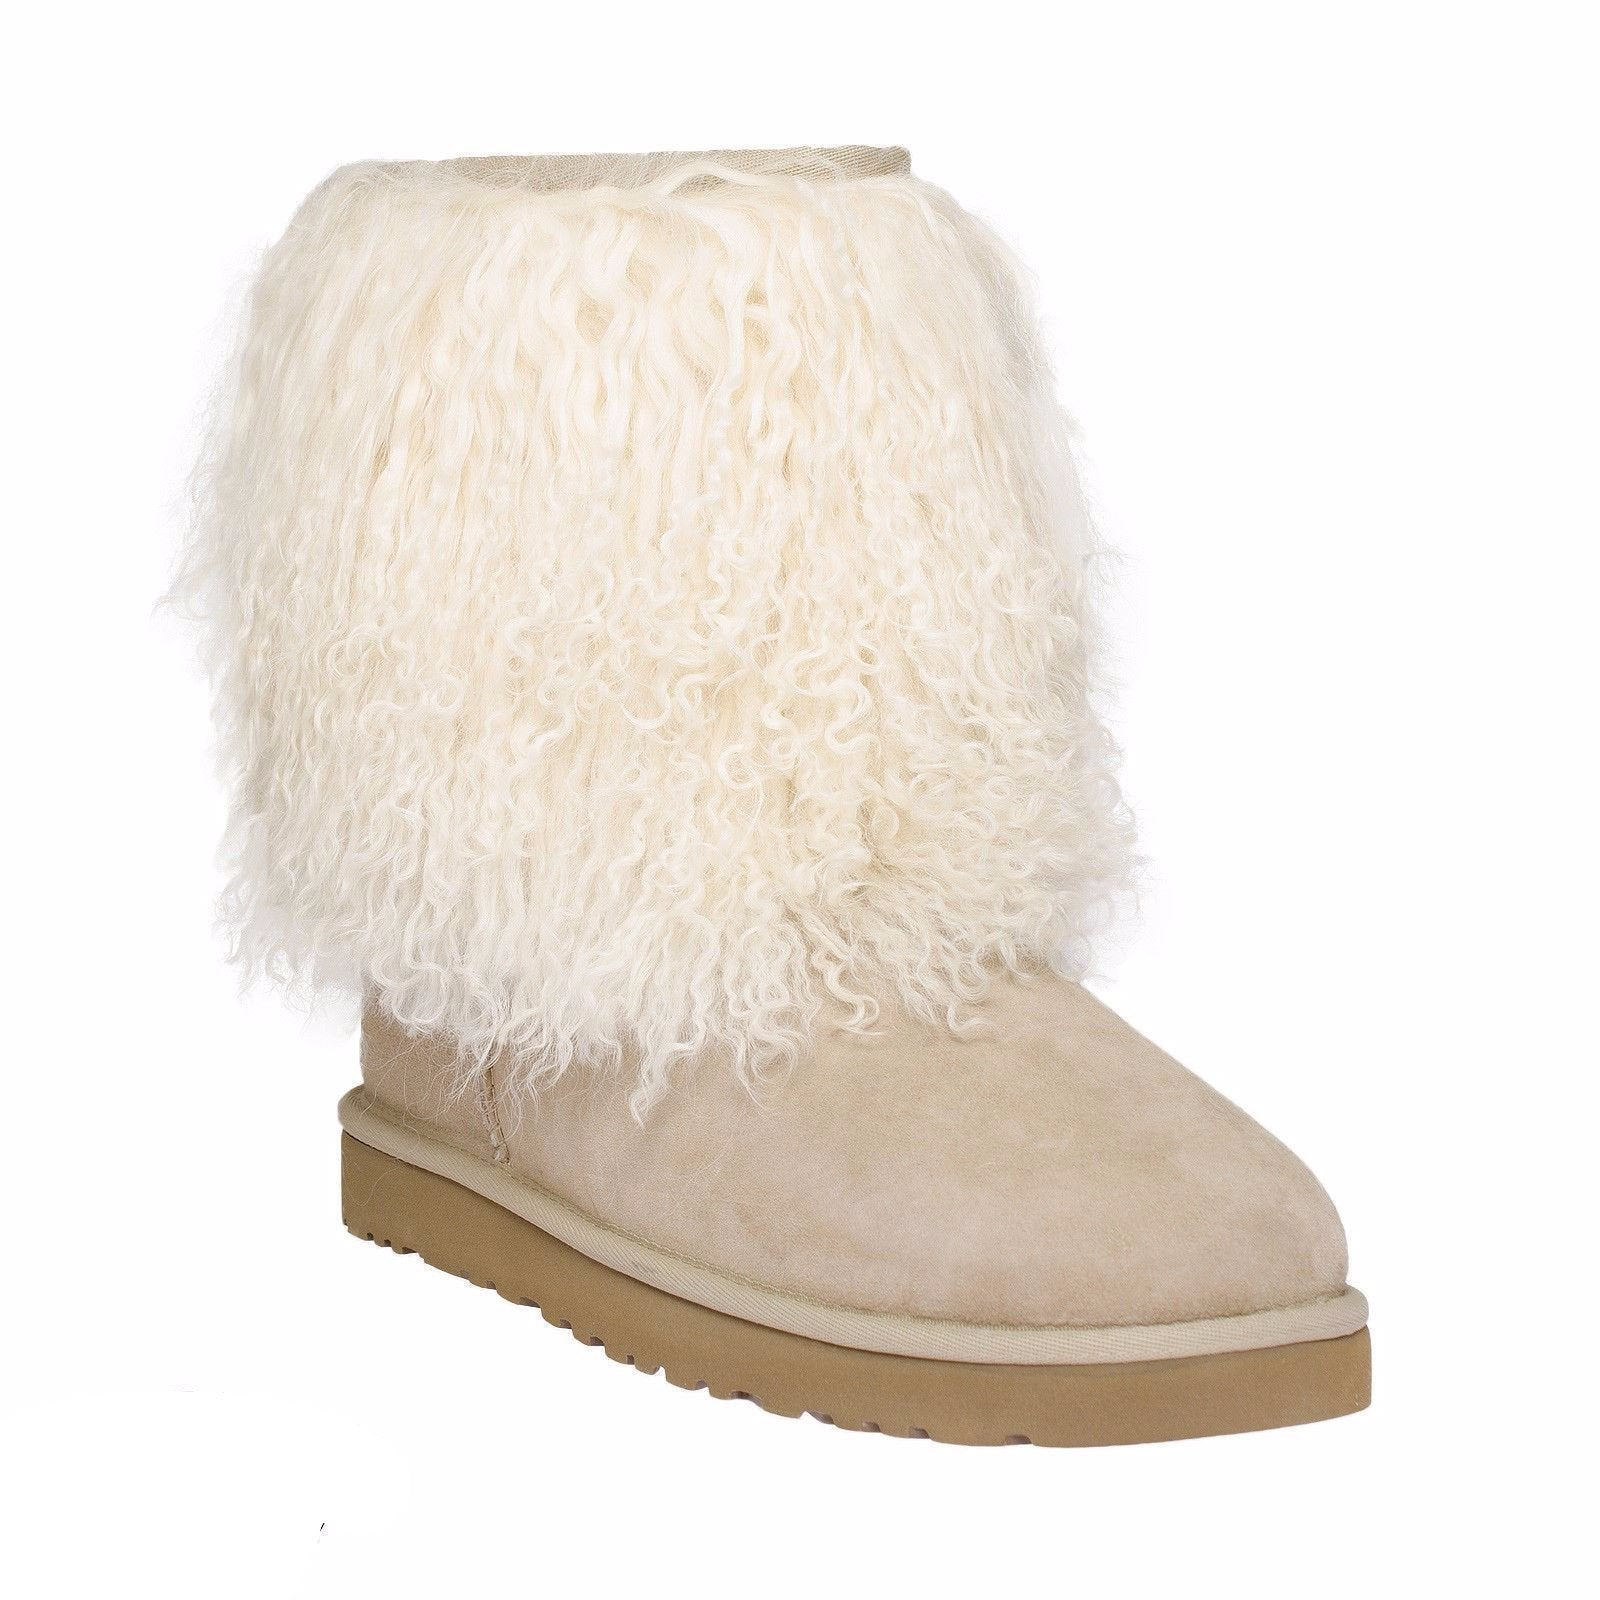 Classic Cuff Sand Ugg Boot with Sand Fur